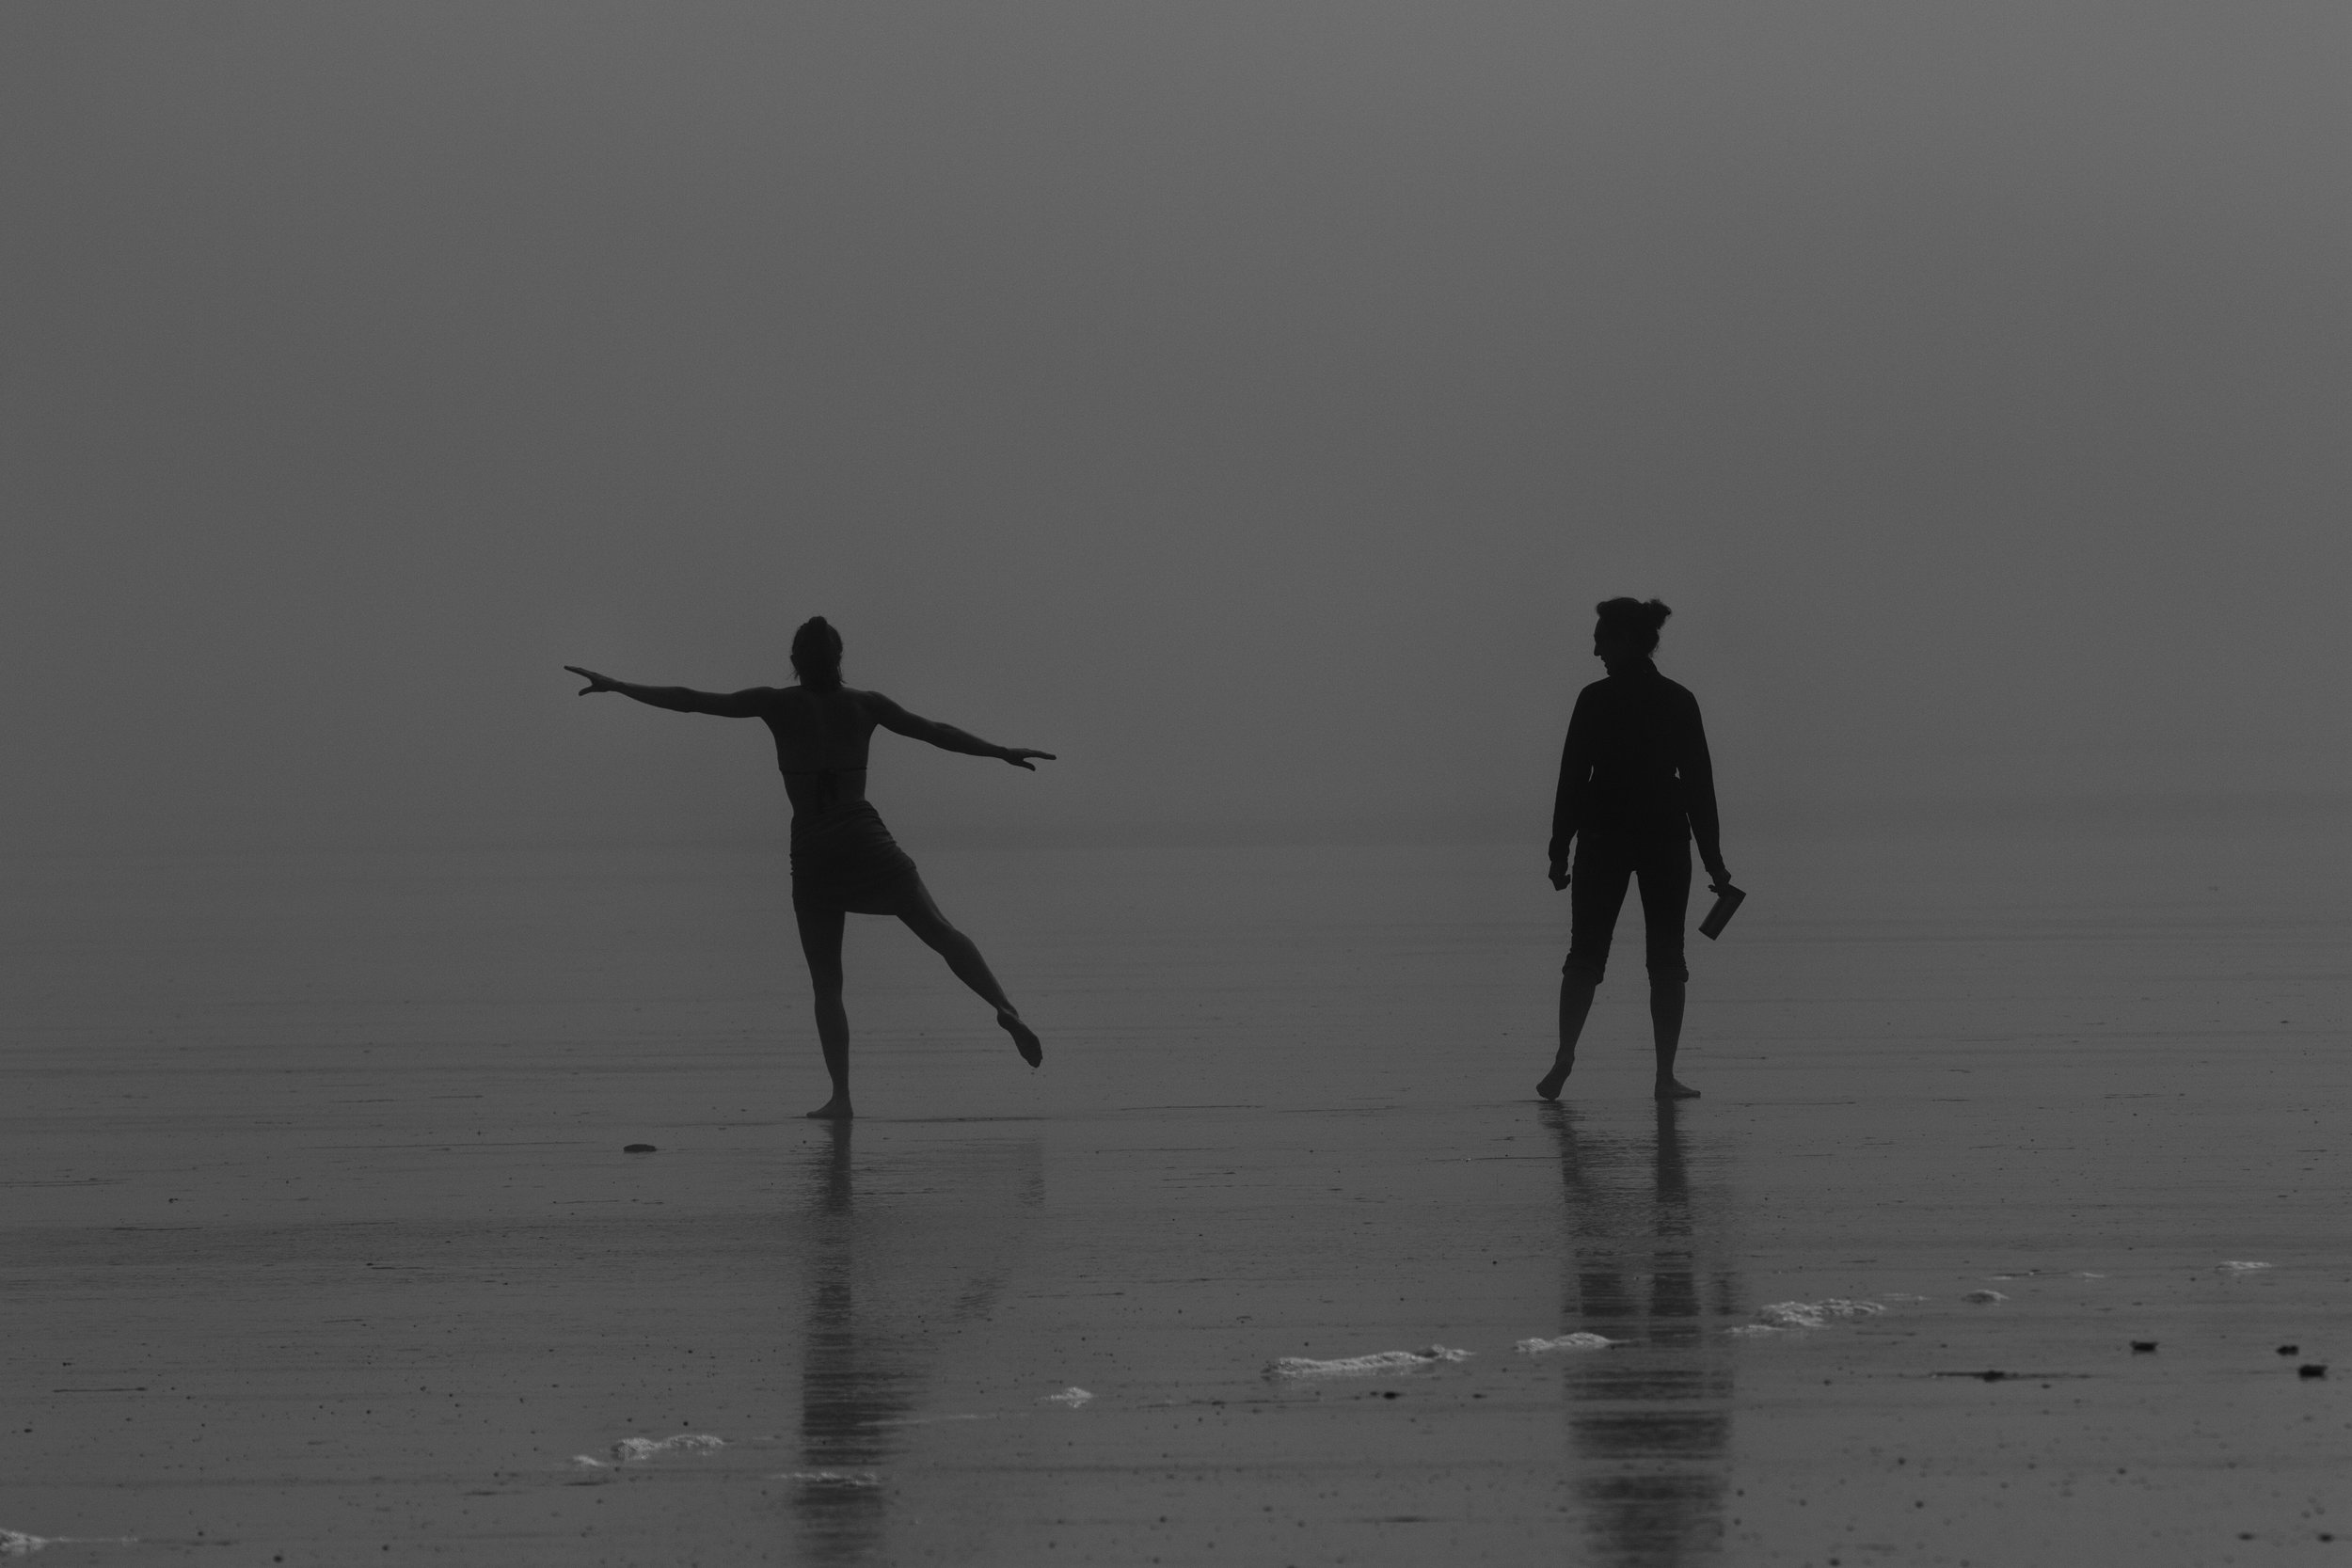 Dancing in the mist on Long Beach. Canon 7D Mk. II EF 70-200 at 200mm 1/2000 f/5.6 ISO 100